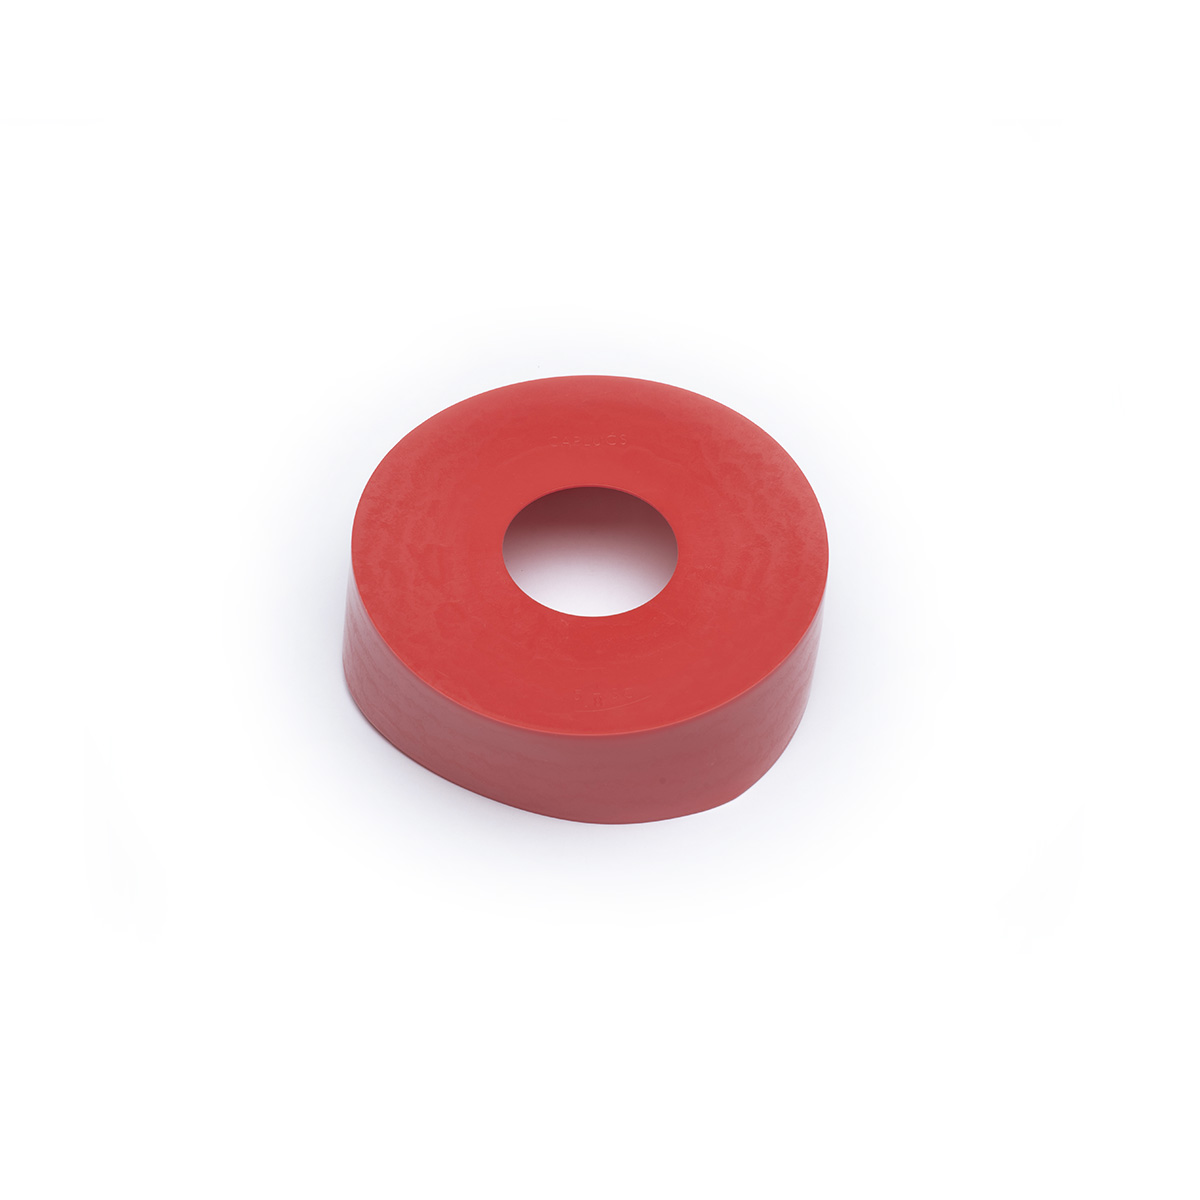 "Tape Ring, 5.0"", for 2"" duct"